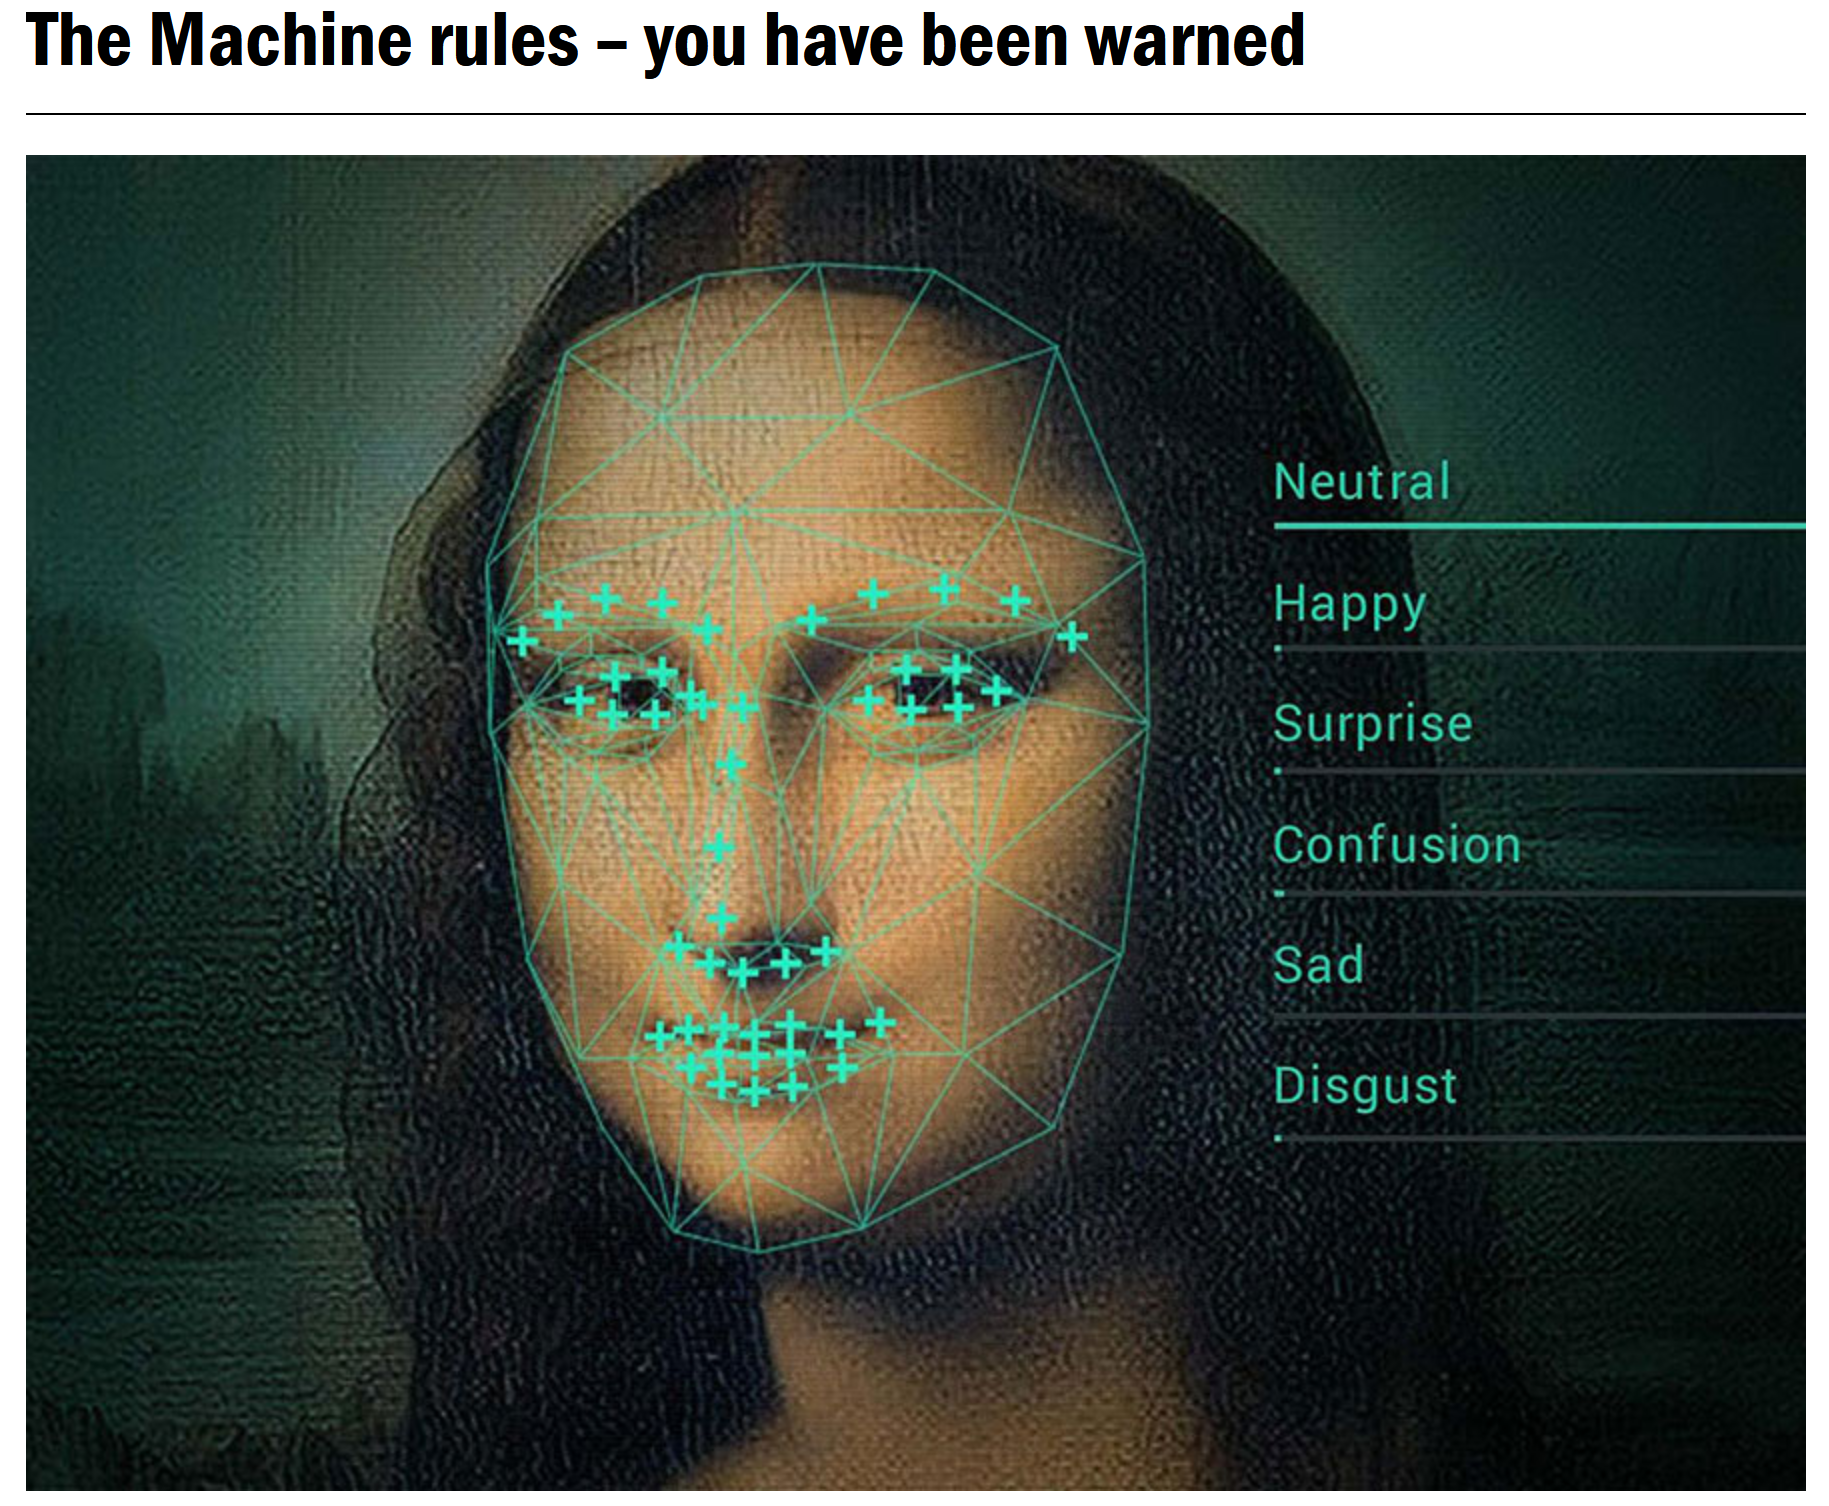 The Machine Rules article